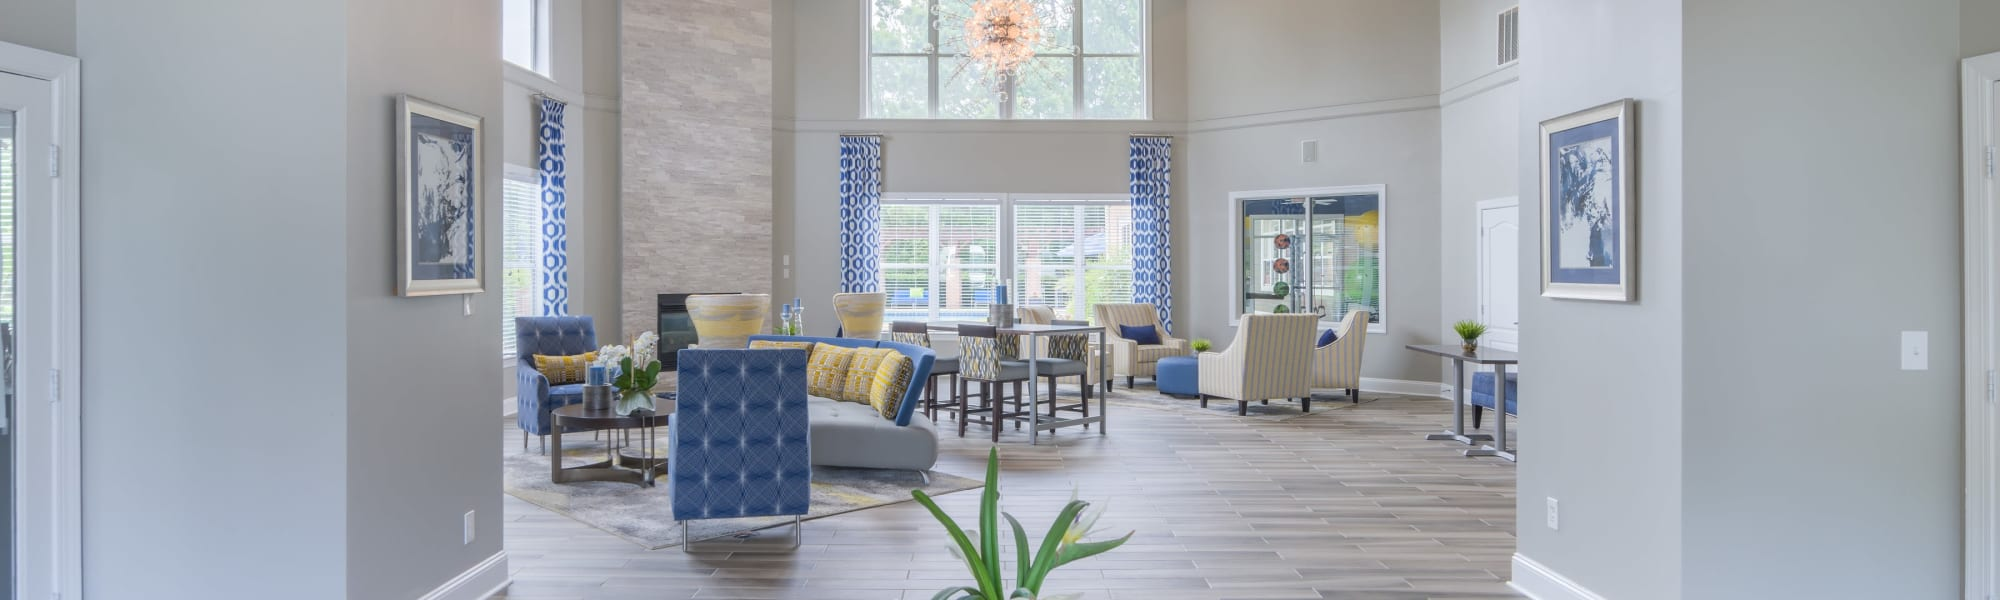 Virtual tours of WestEnd At 76Ten in Tampa, Florida